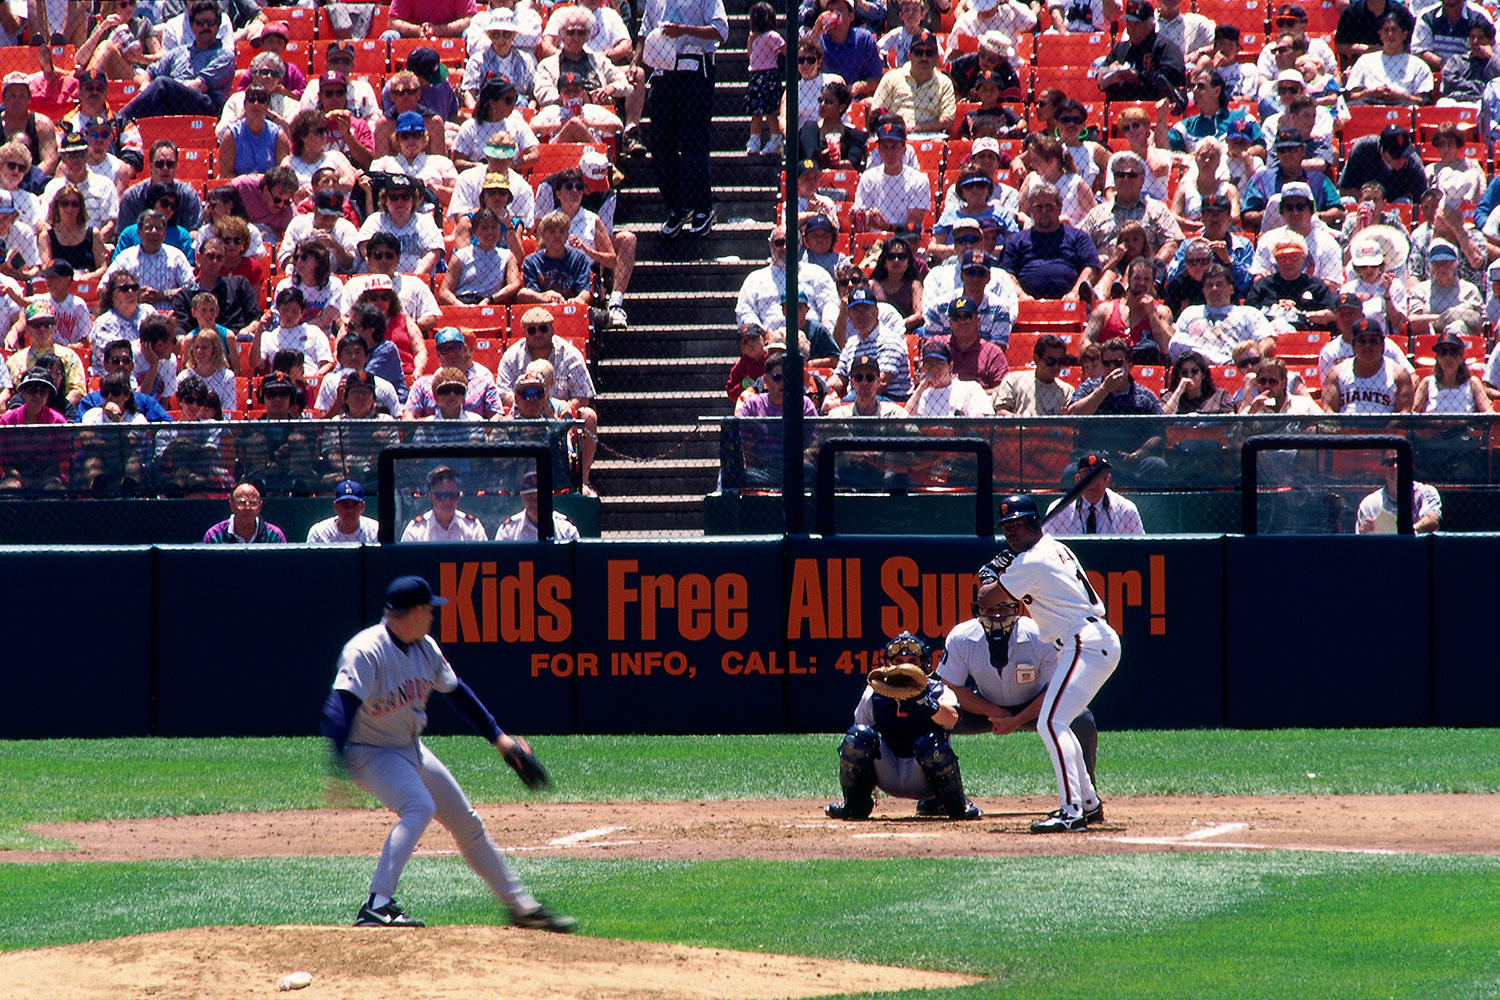 Glenallen Hill batting for the Giants during a game on July 1, 1995 at Candlestick Park. (Brad Mangin / National Baseball Hall of Fame)